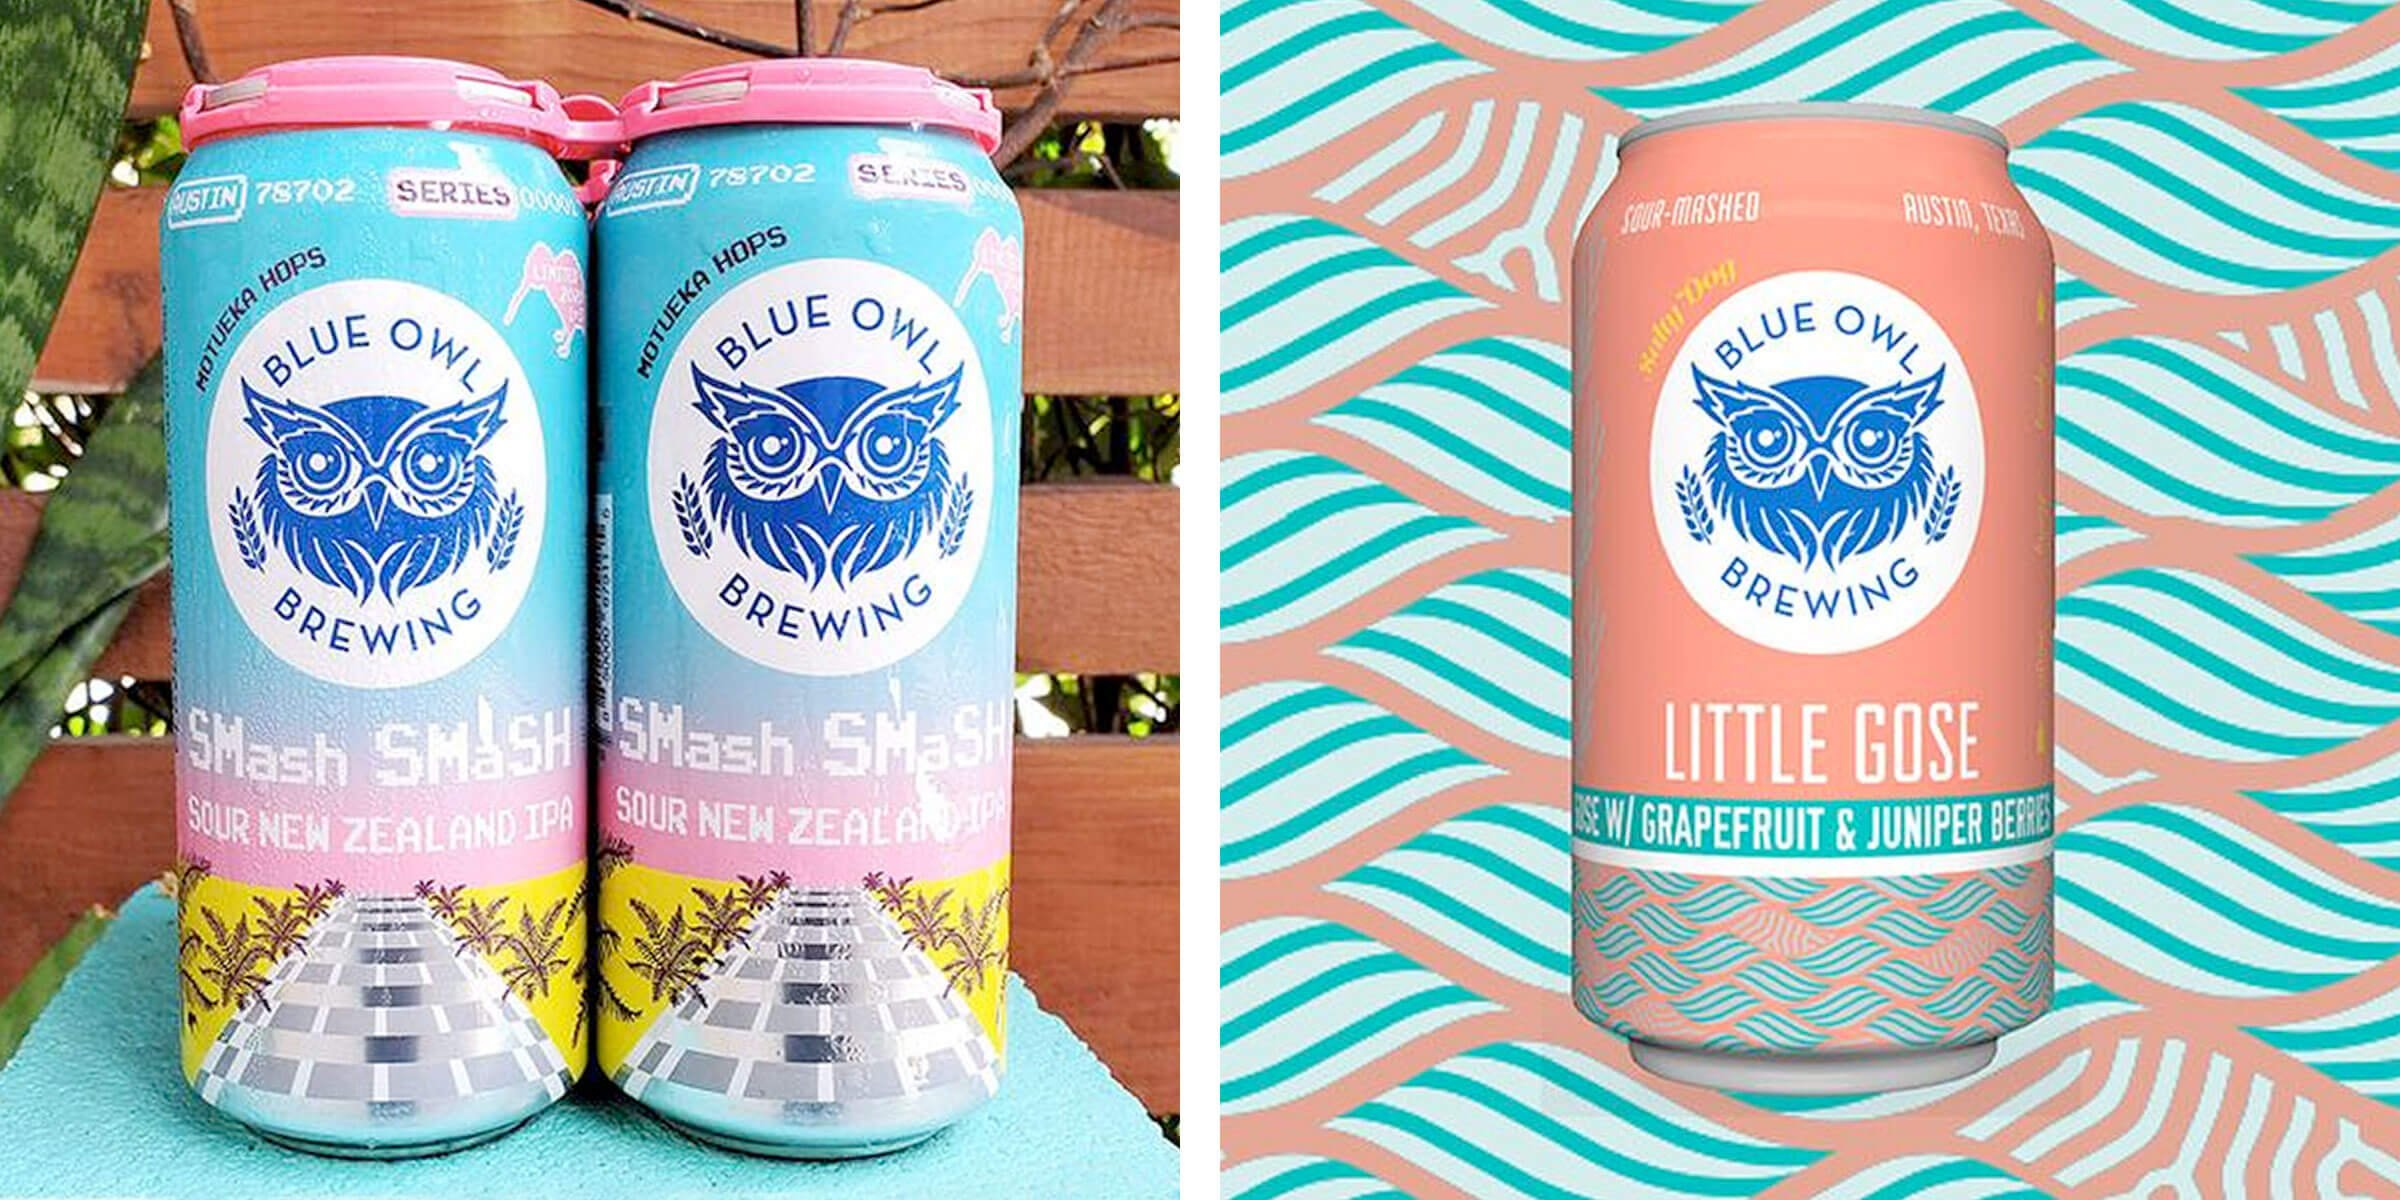 Blue Owl Brewing announced a pair of beer releases coming later this month: SMash SMaSH Third Edition: New Zealand Sour IPA and Little Gose Salty Dog.